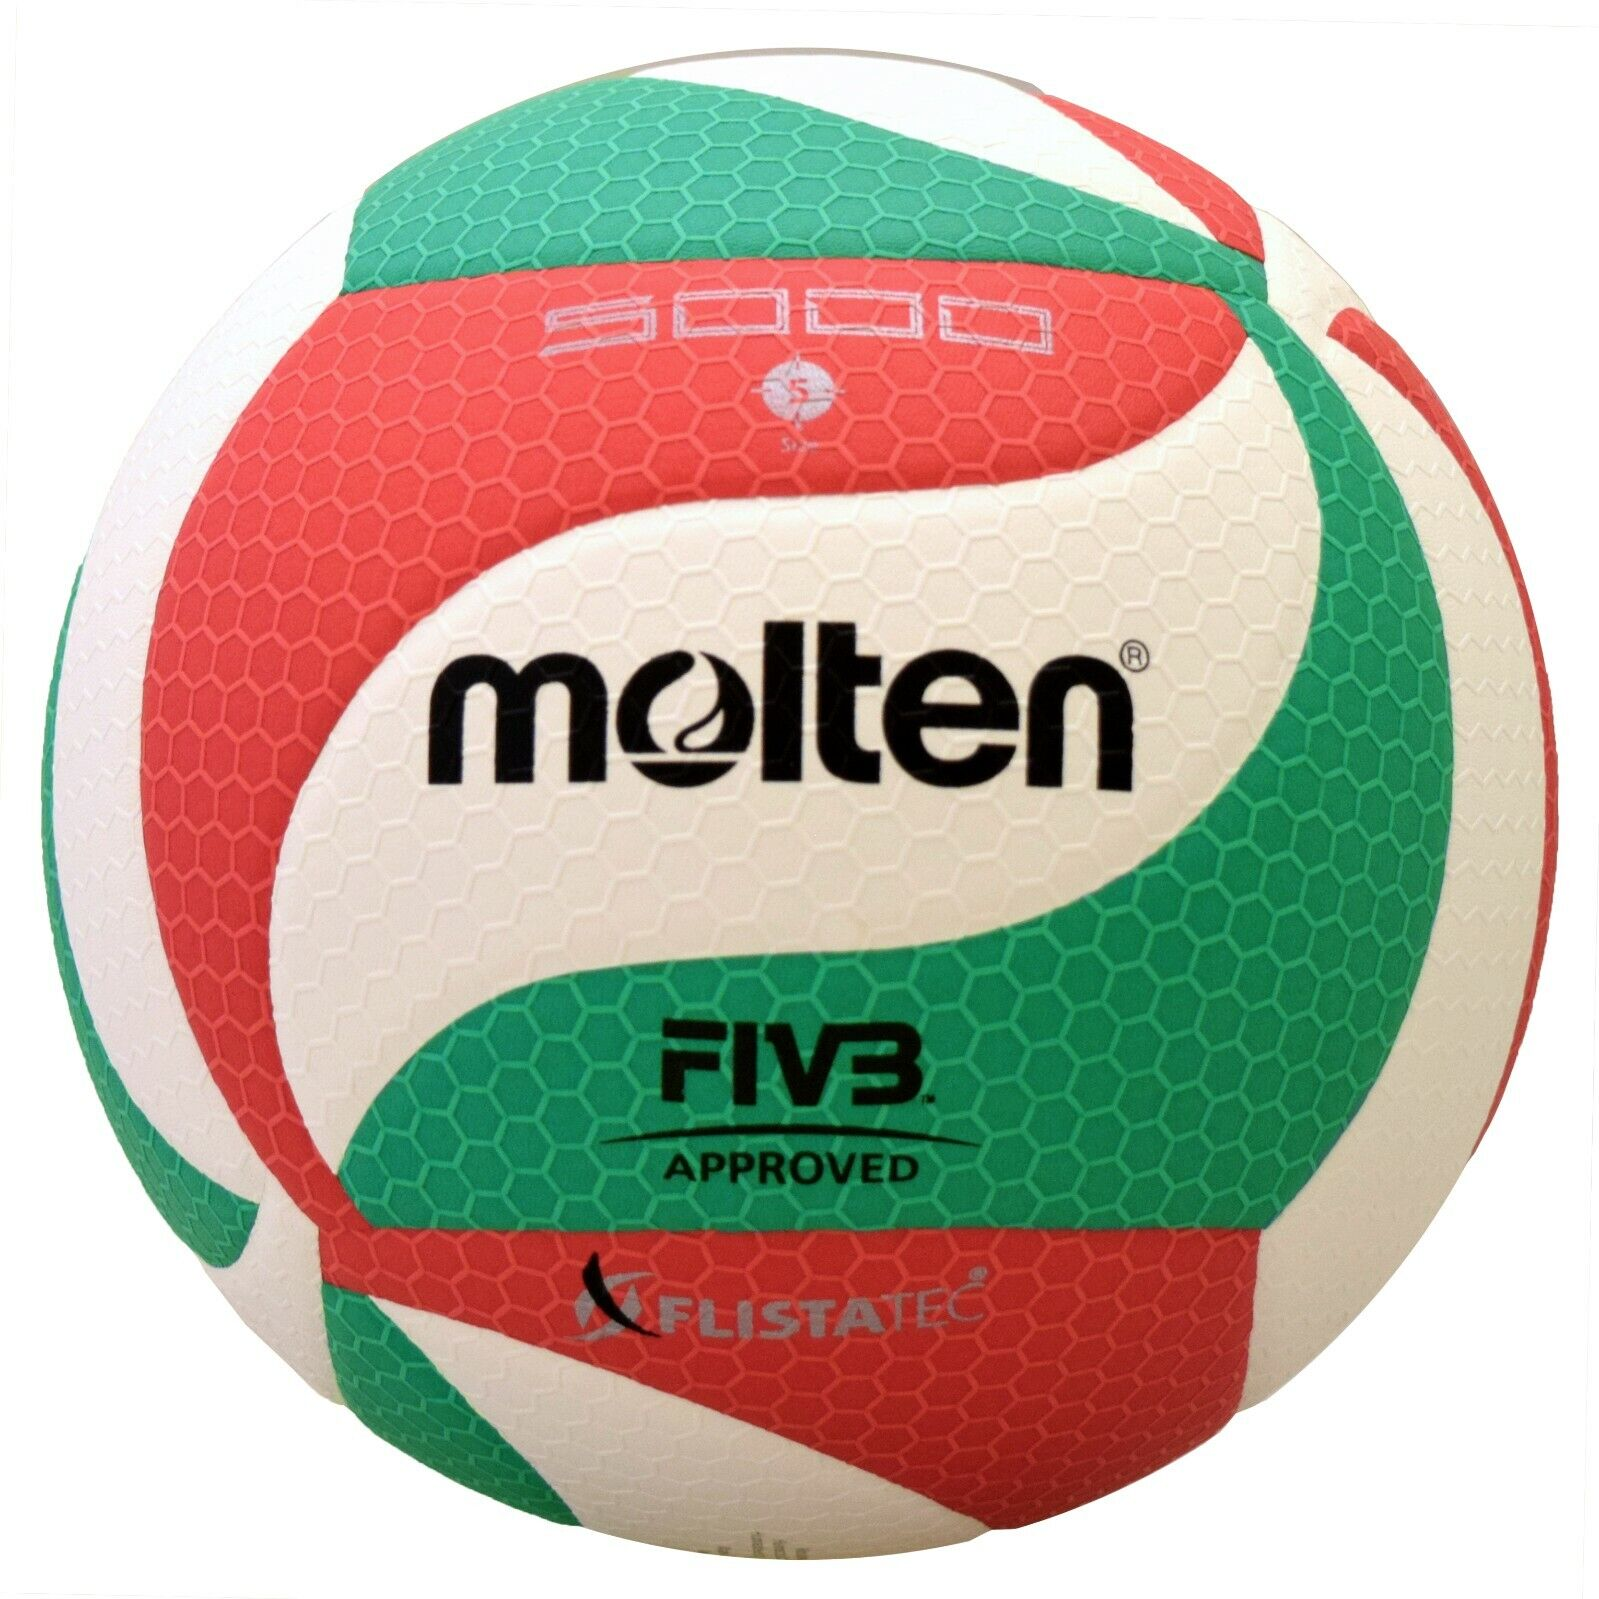 Molten Flistatec V5m5000 Norceca Volleyball Us Seller For Sale Online